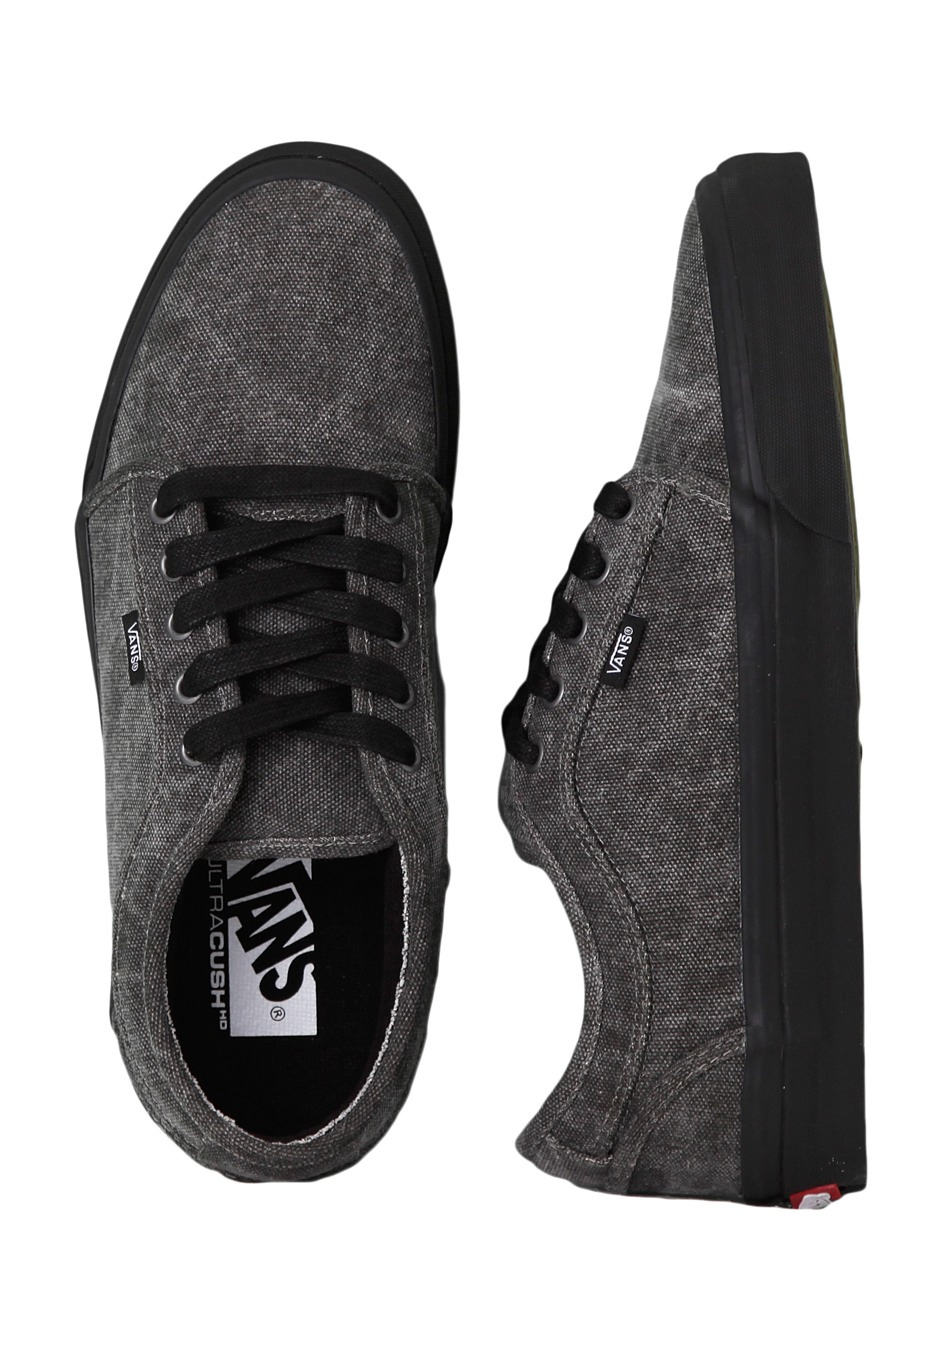 4609580ad5d2 Vans - Chukka Low Washed Canvas Black Black - Shoes - Impericon.com UK